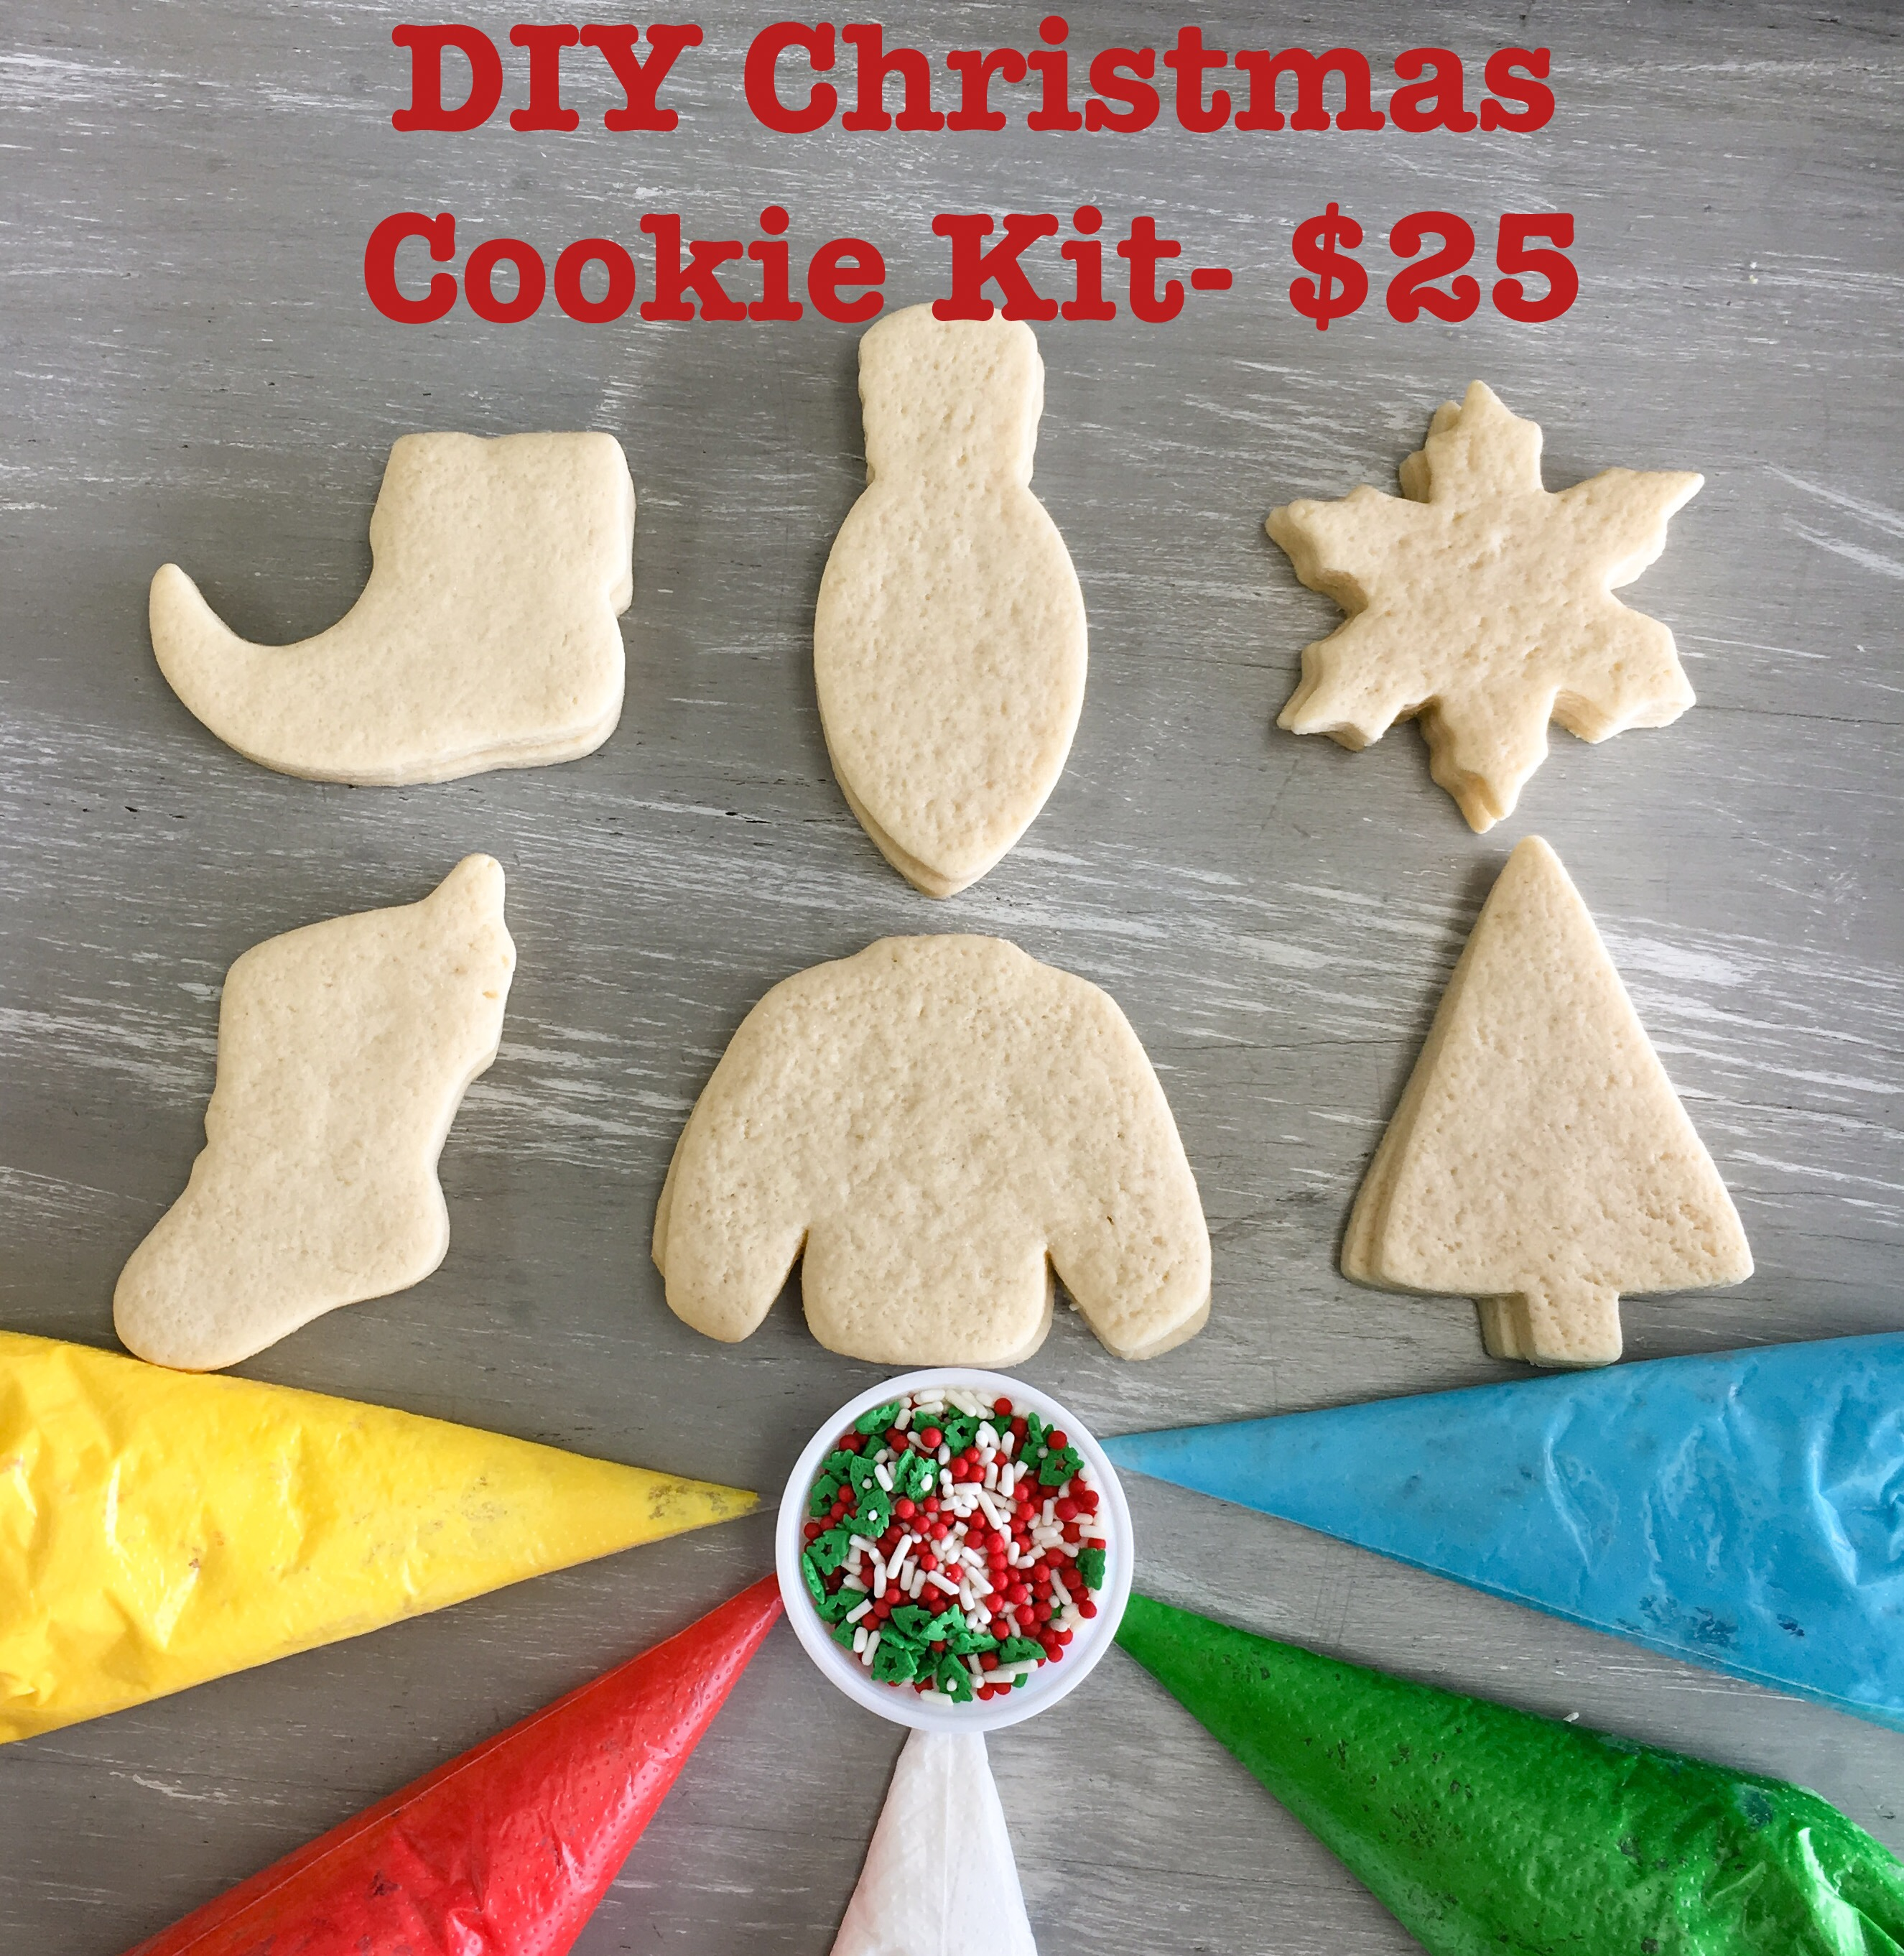 Diy Christmas Cookie Decorating Kit Shipped